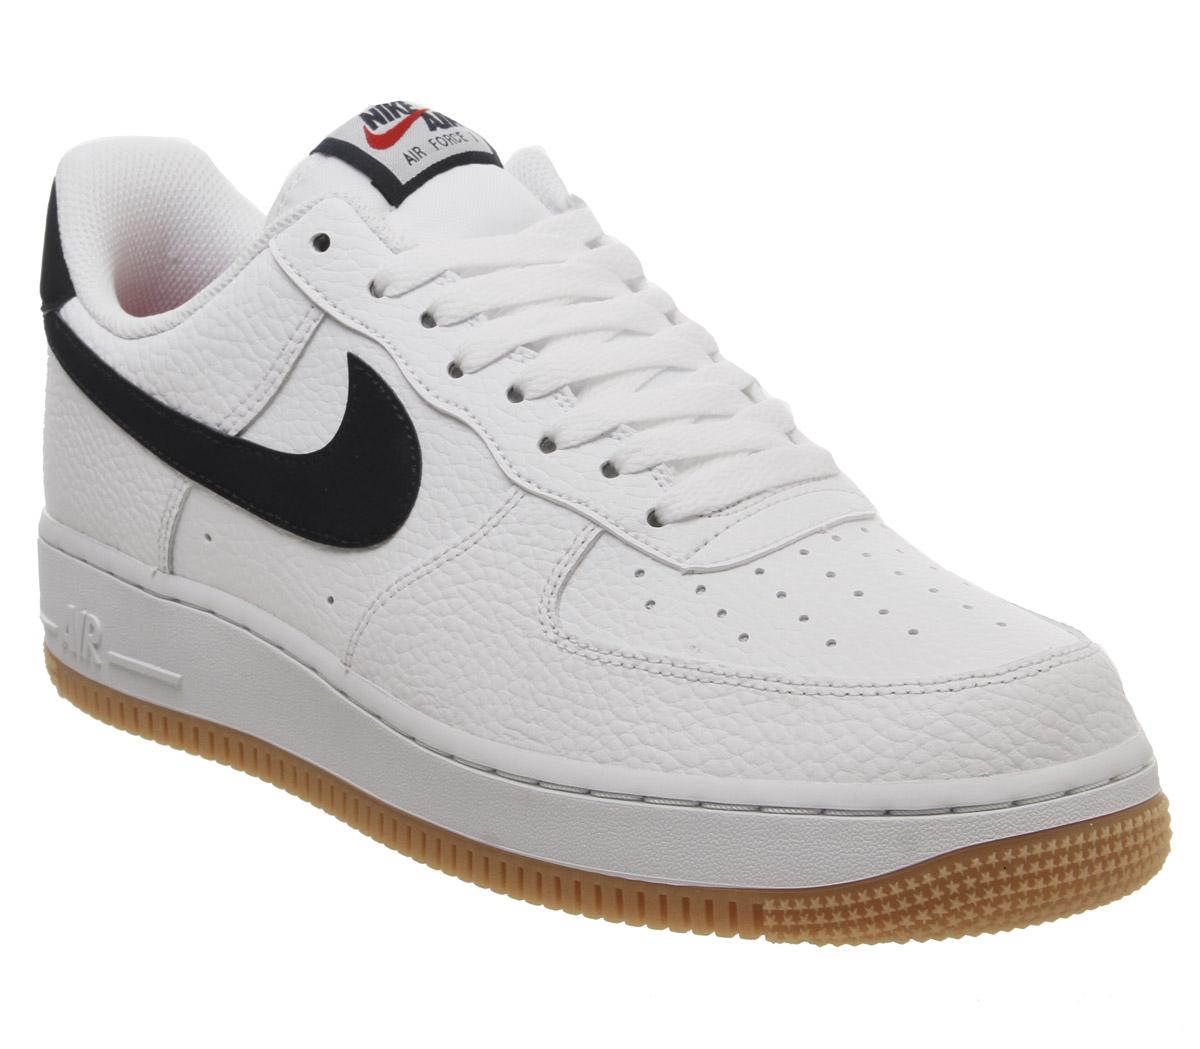 Aplastar Desconocido peine  Nike Air Force 1 Lv8 Trainers Black Gum - His trainers